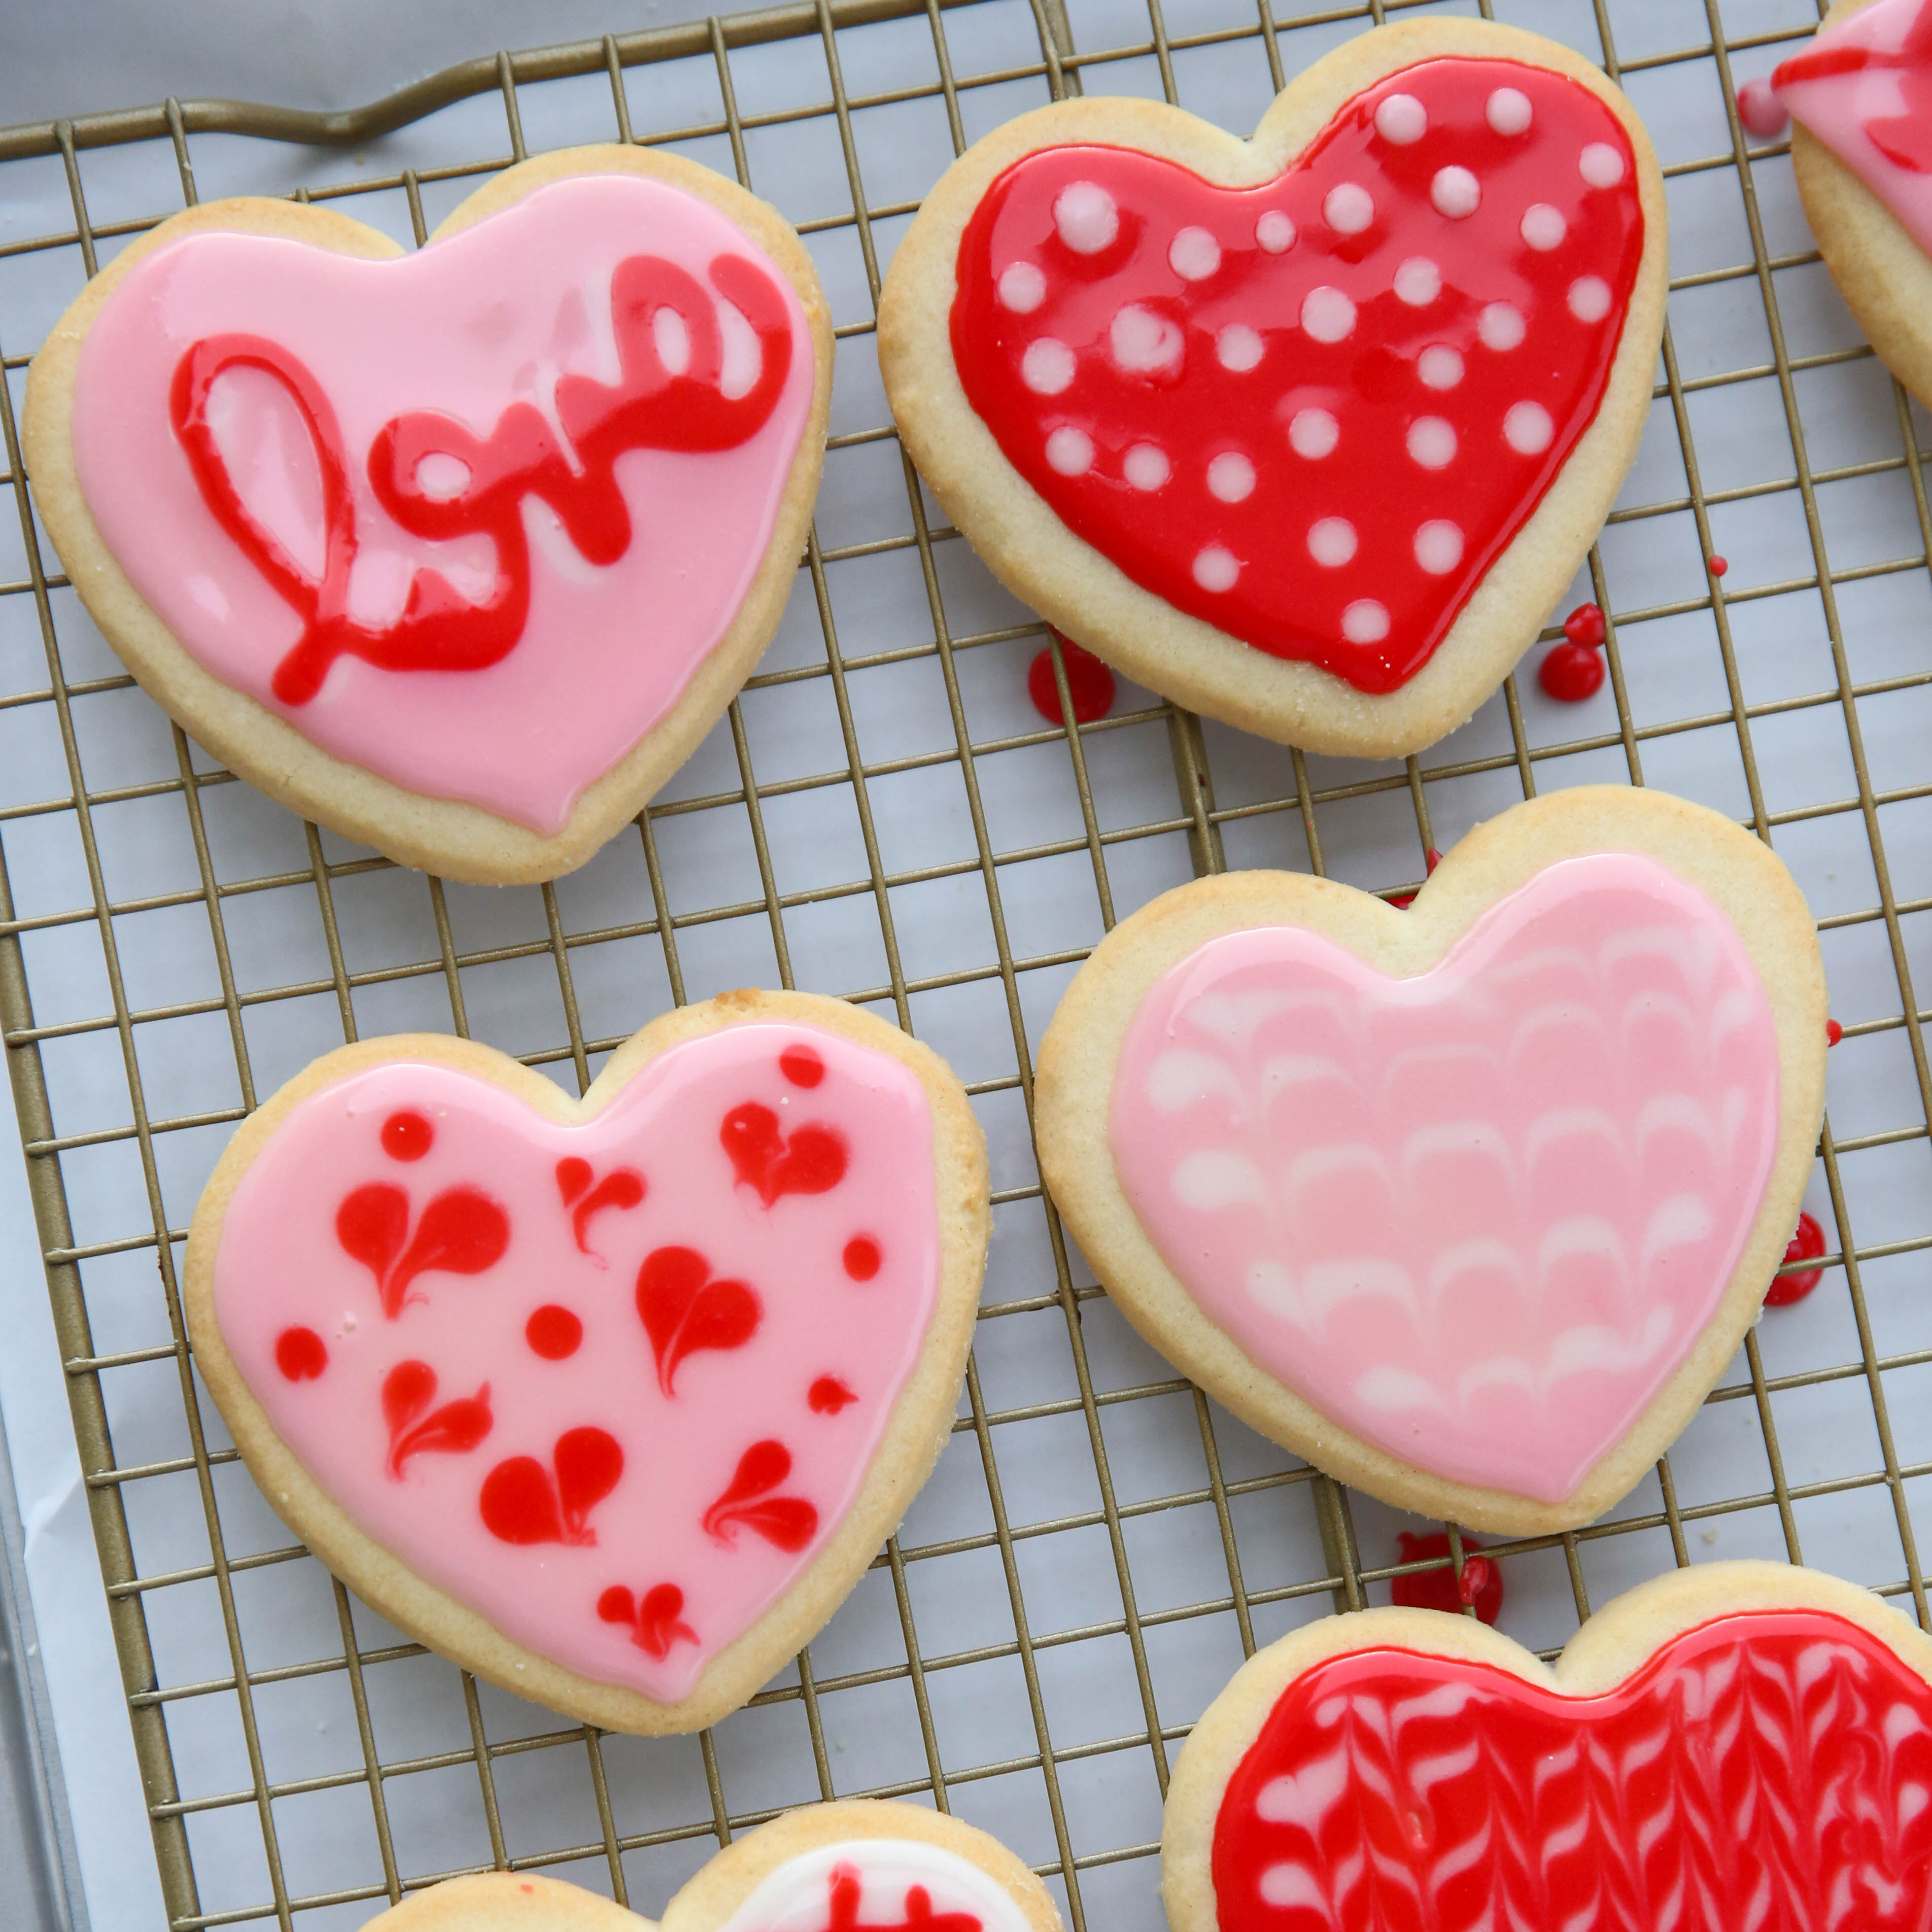 Tutorial Cookie Decorating With Glace Icing Our Best Bites